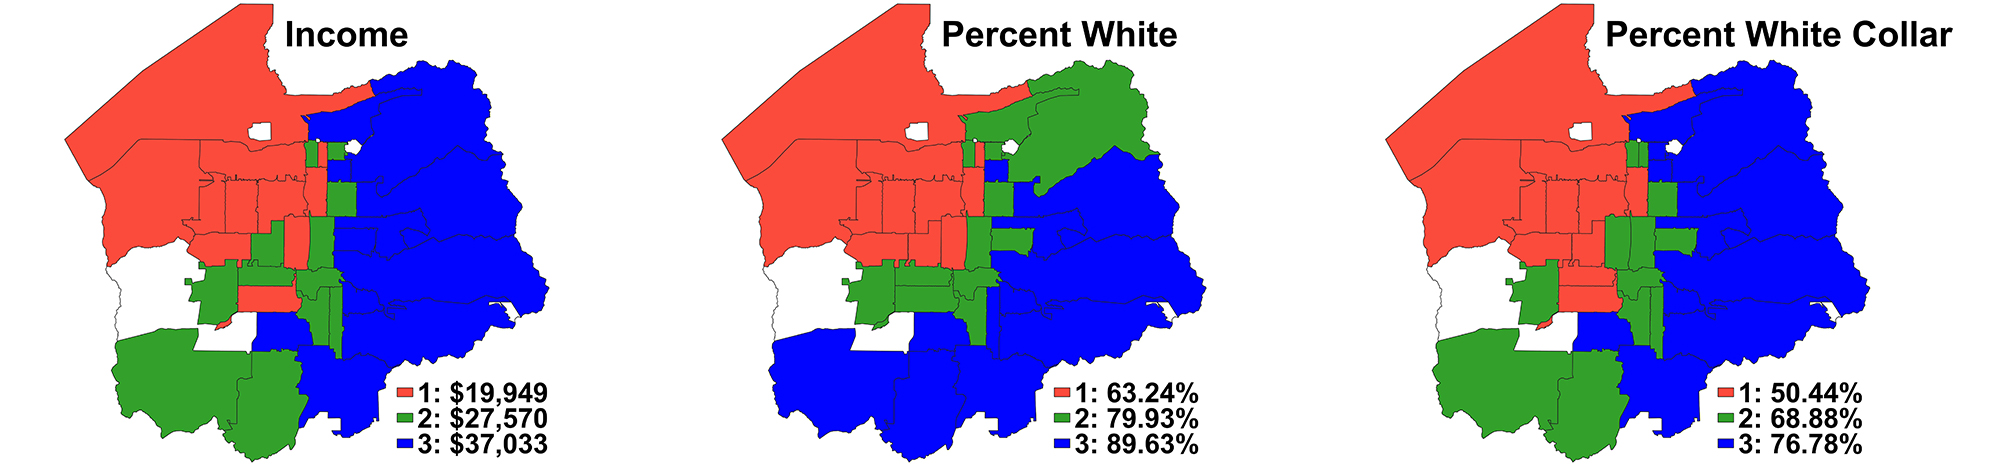 Three maps showing the racial, income, and occupational distribution of Salt Lake County, Utah. The northwest quadrant is the lowest income, the least white, and the least white collar. Conversely, the southeast quadrant is the highest income, most white and most white collar. The northwest quadrant is affluent and white collar, but more racially diverse. The southwest quadrant is the opposite: median income, median amounts of white collar workers and least diverse.